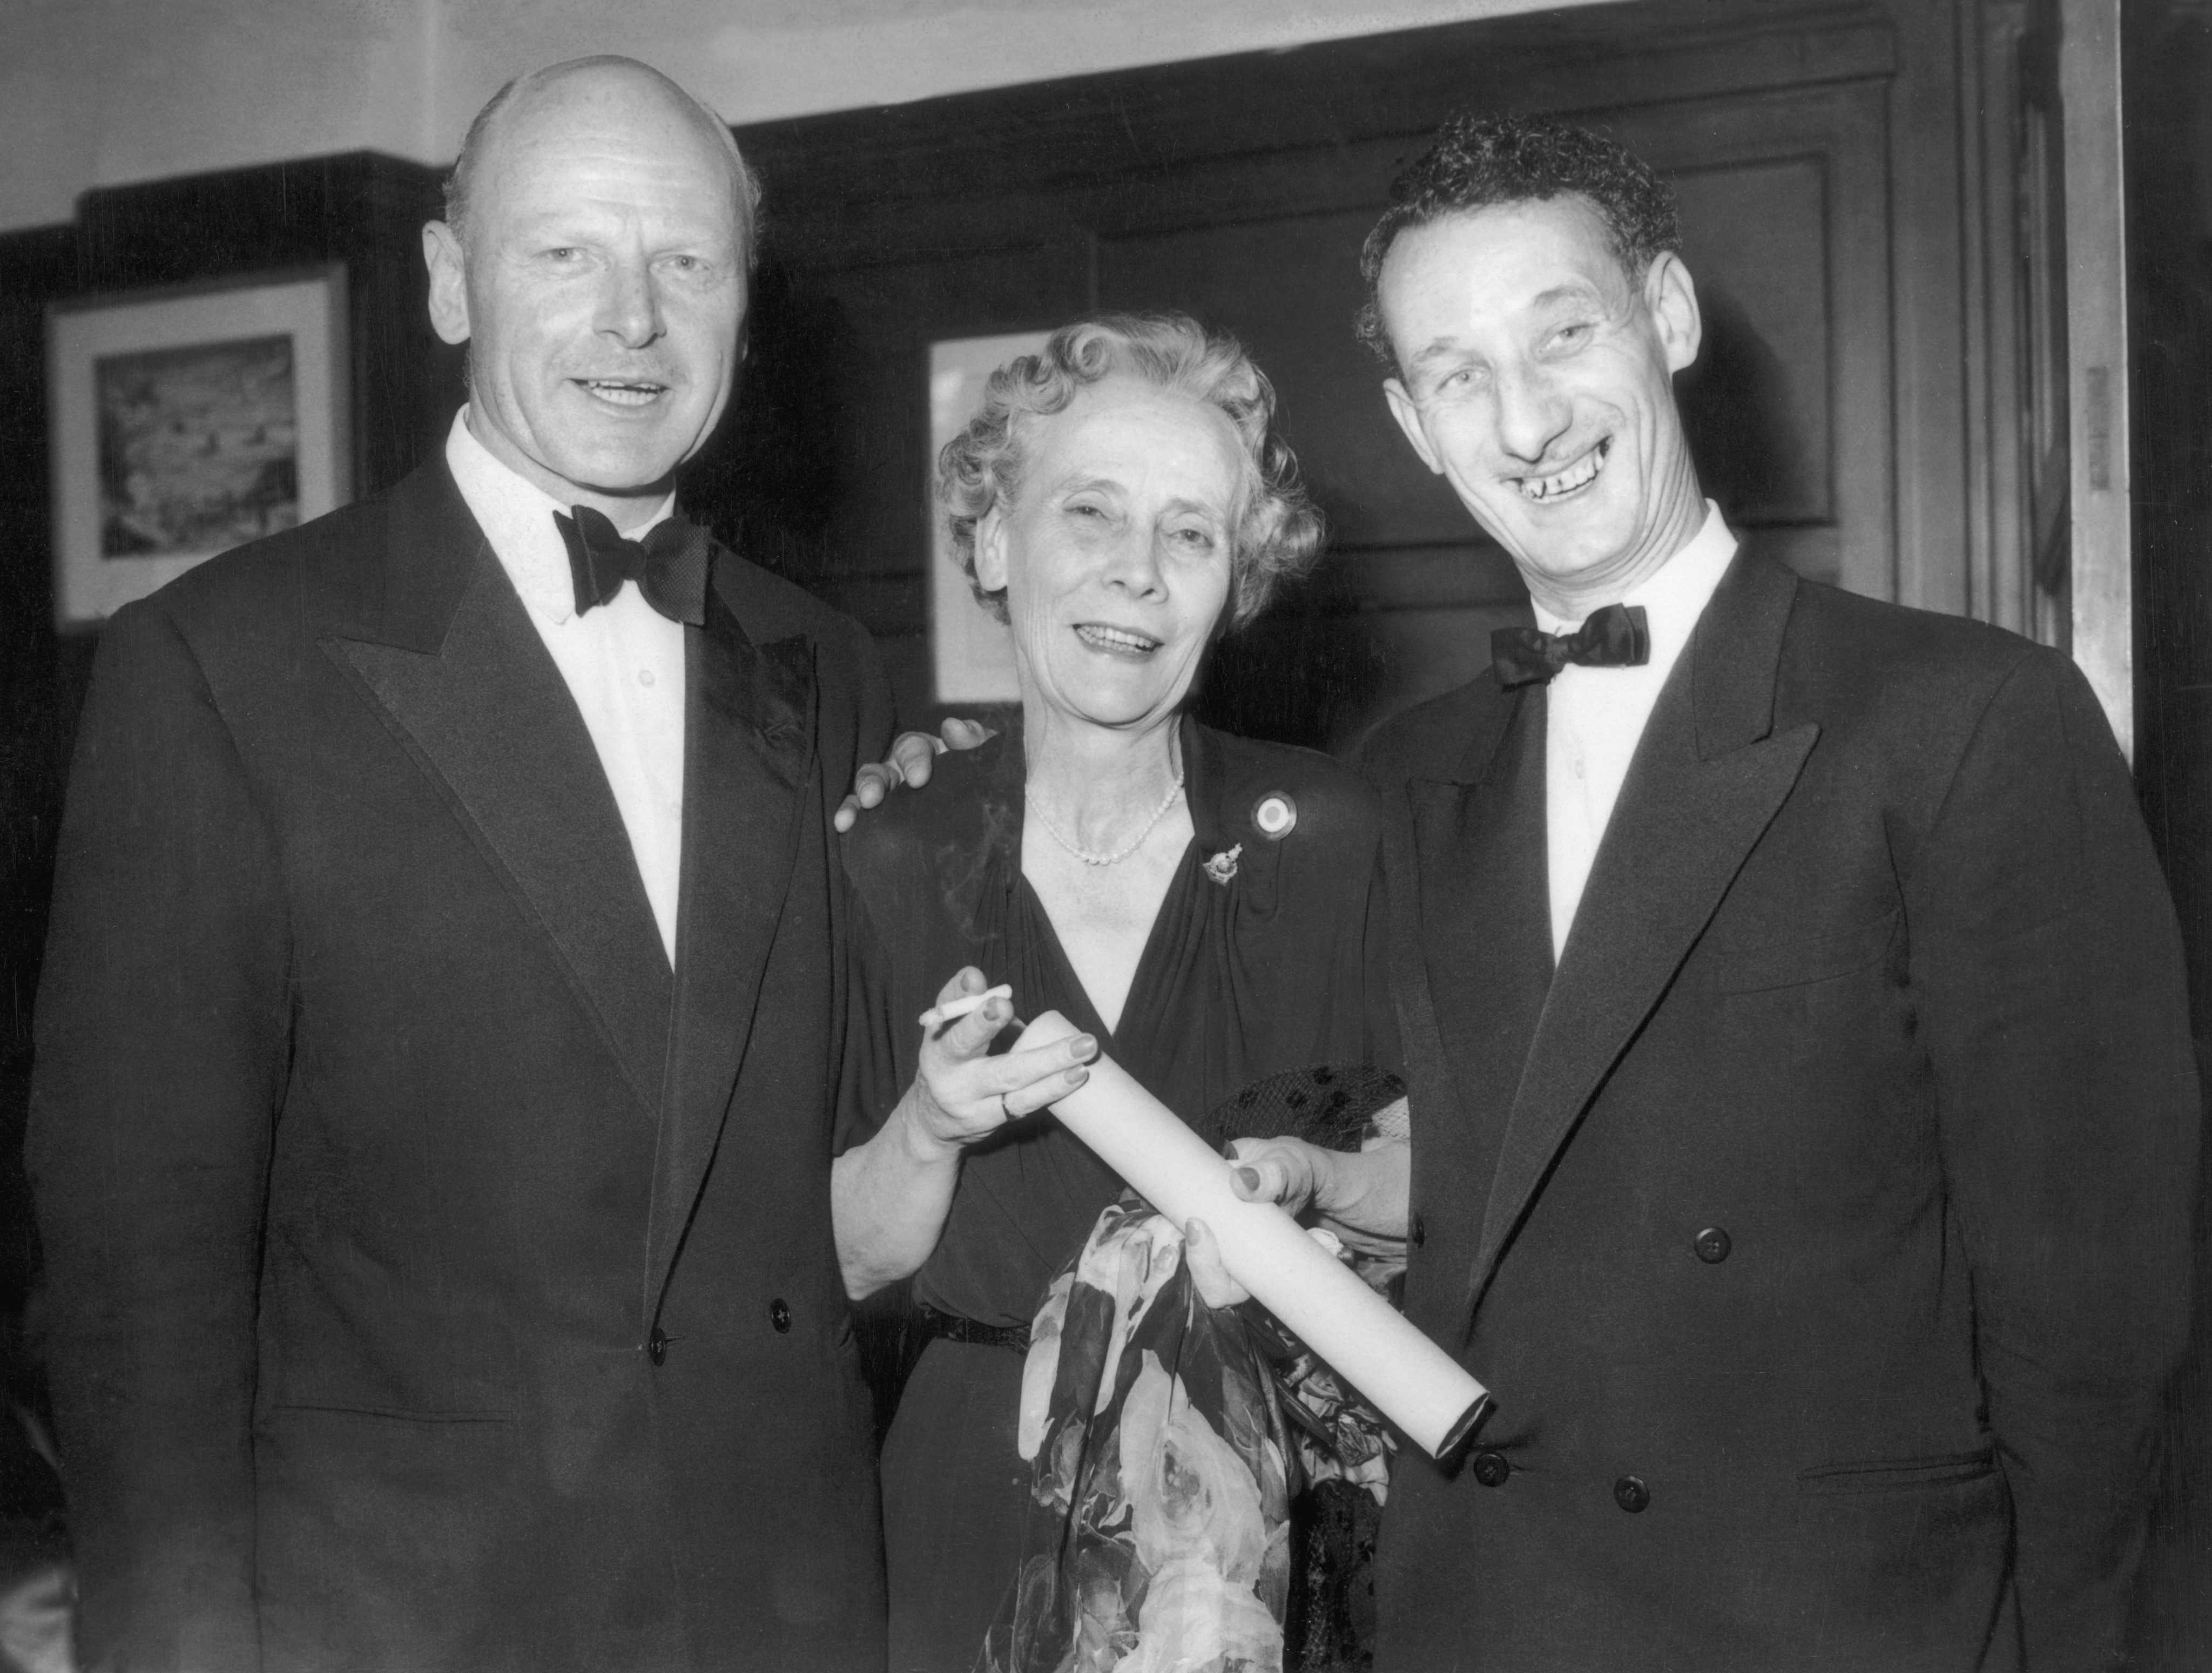 "Herbert 'Blondie' Hasler (left) pictured with Bill Sparks and Mary Lindell. It was ""his ability to take ordinary men and give them the confidence and skills to do extraordinary things"" that made him a hero, says Paddy Ashdown. (Photo by Keystone/Hulton Archive/Getty Images)"